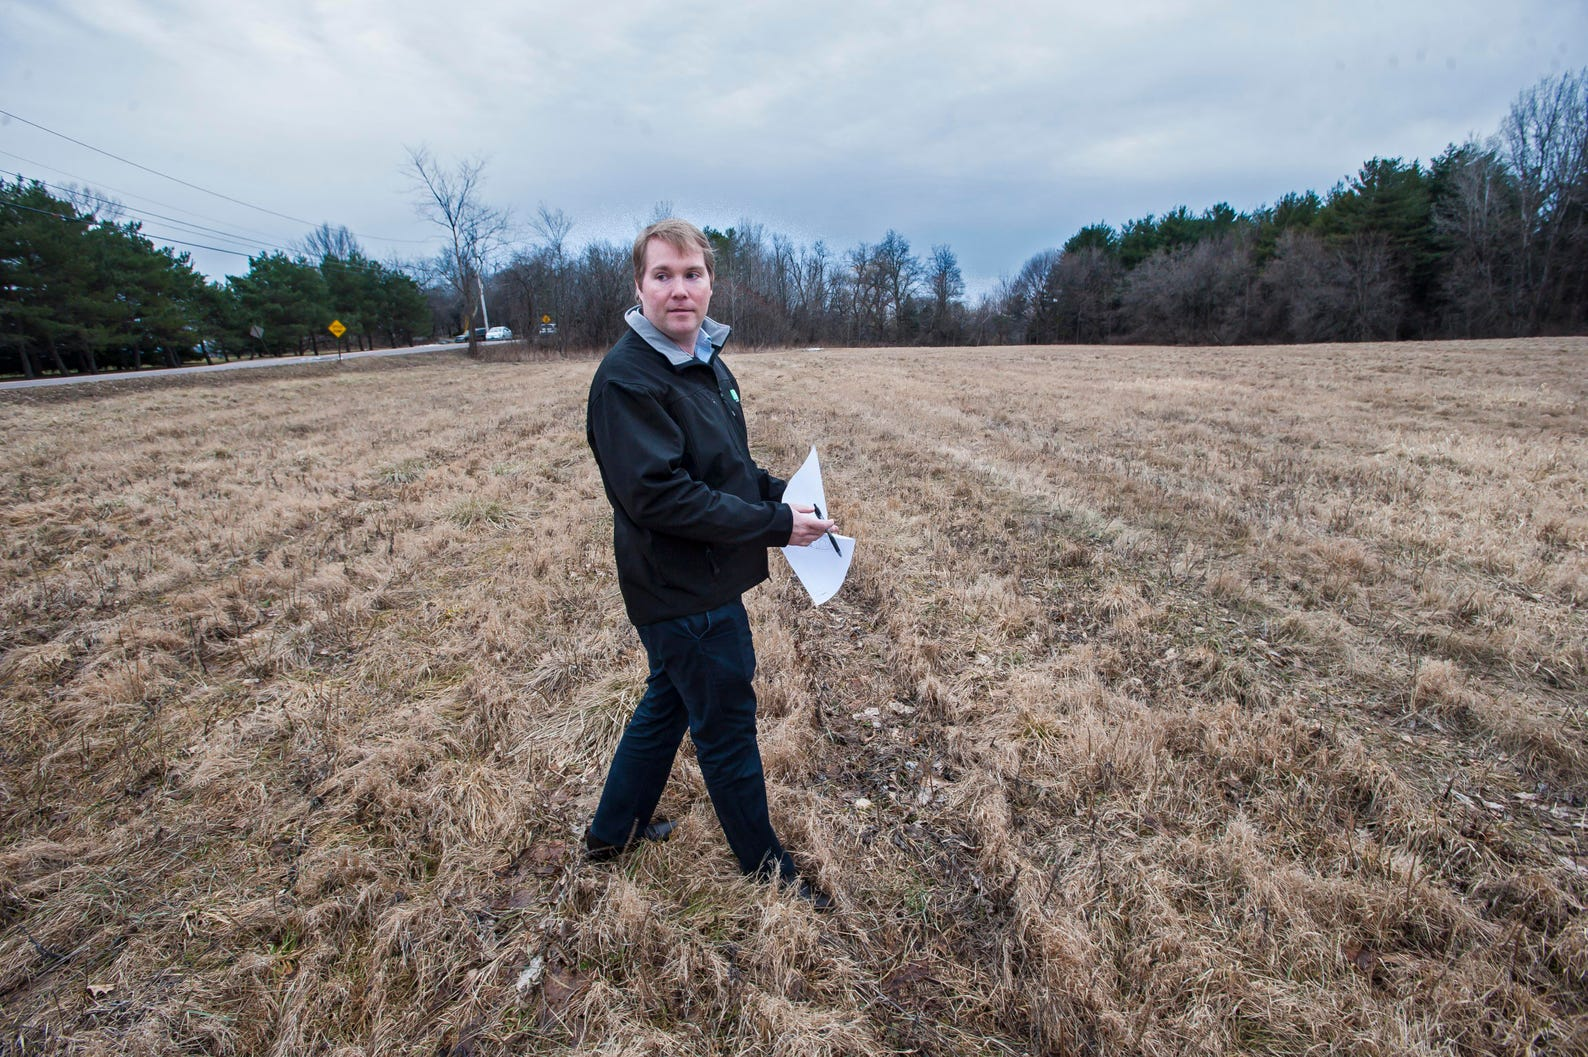 Evan Langfeldt, CEO of the O'Brien Brothers Agency, near the site of a planned residential development in South Burlington on Tuesday, February 28, 2017. The project is between Old Farm Road, Kimball Avenue and Route 116.